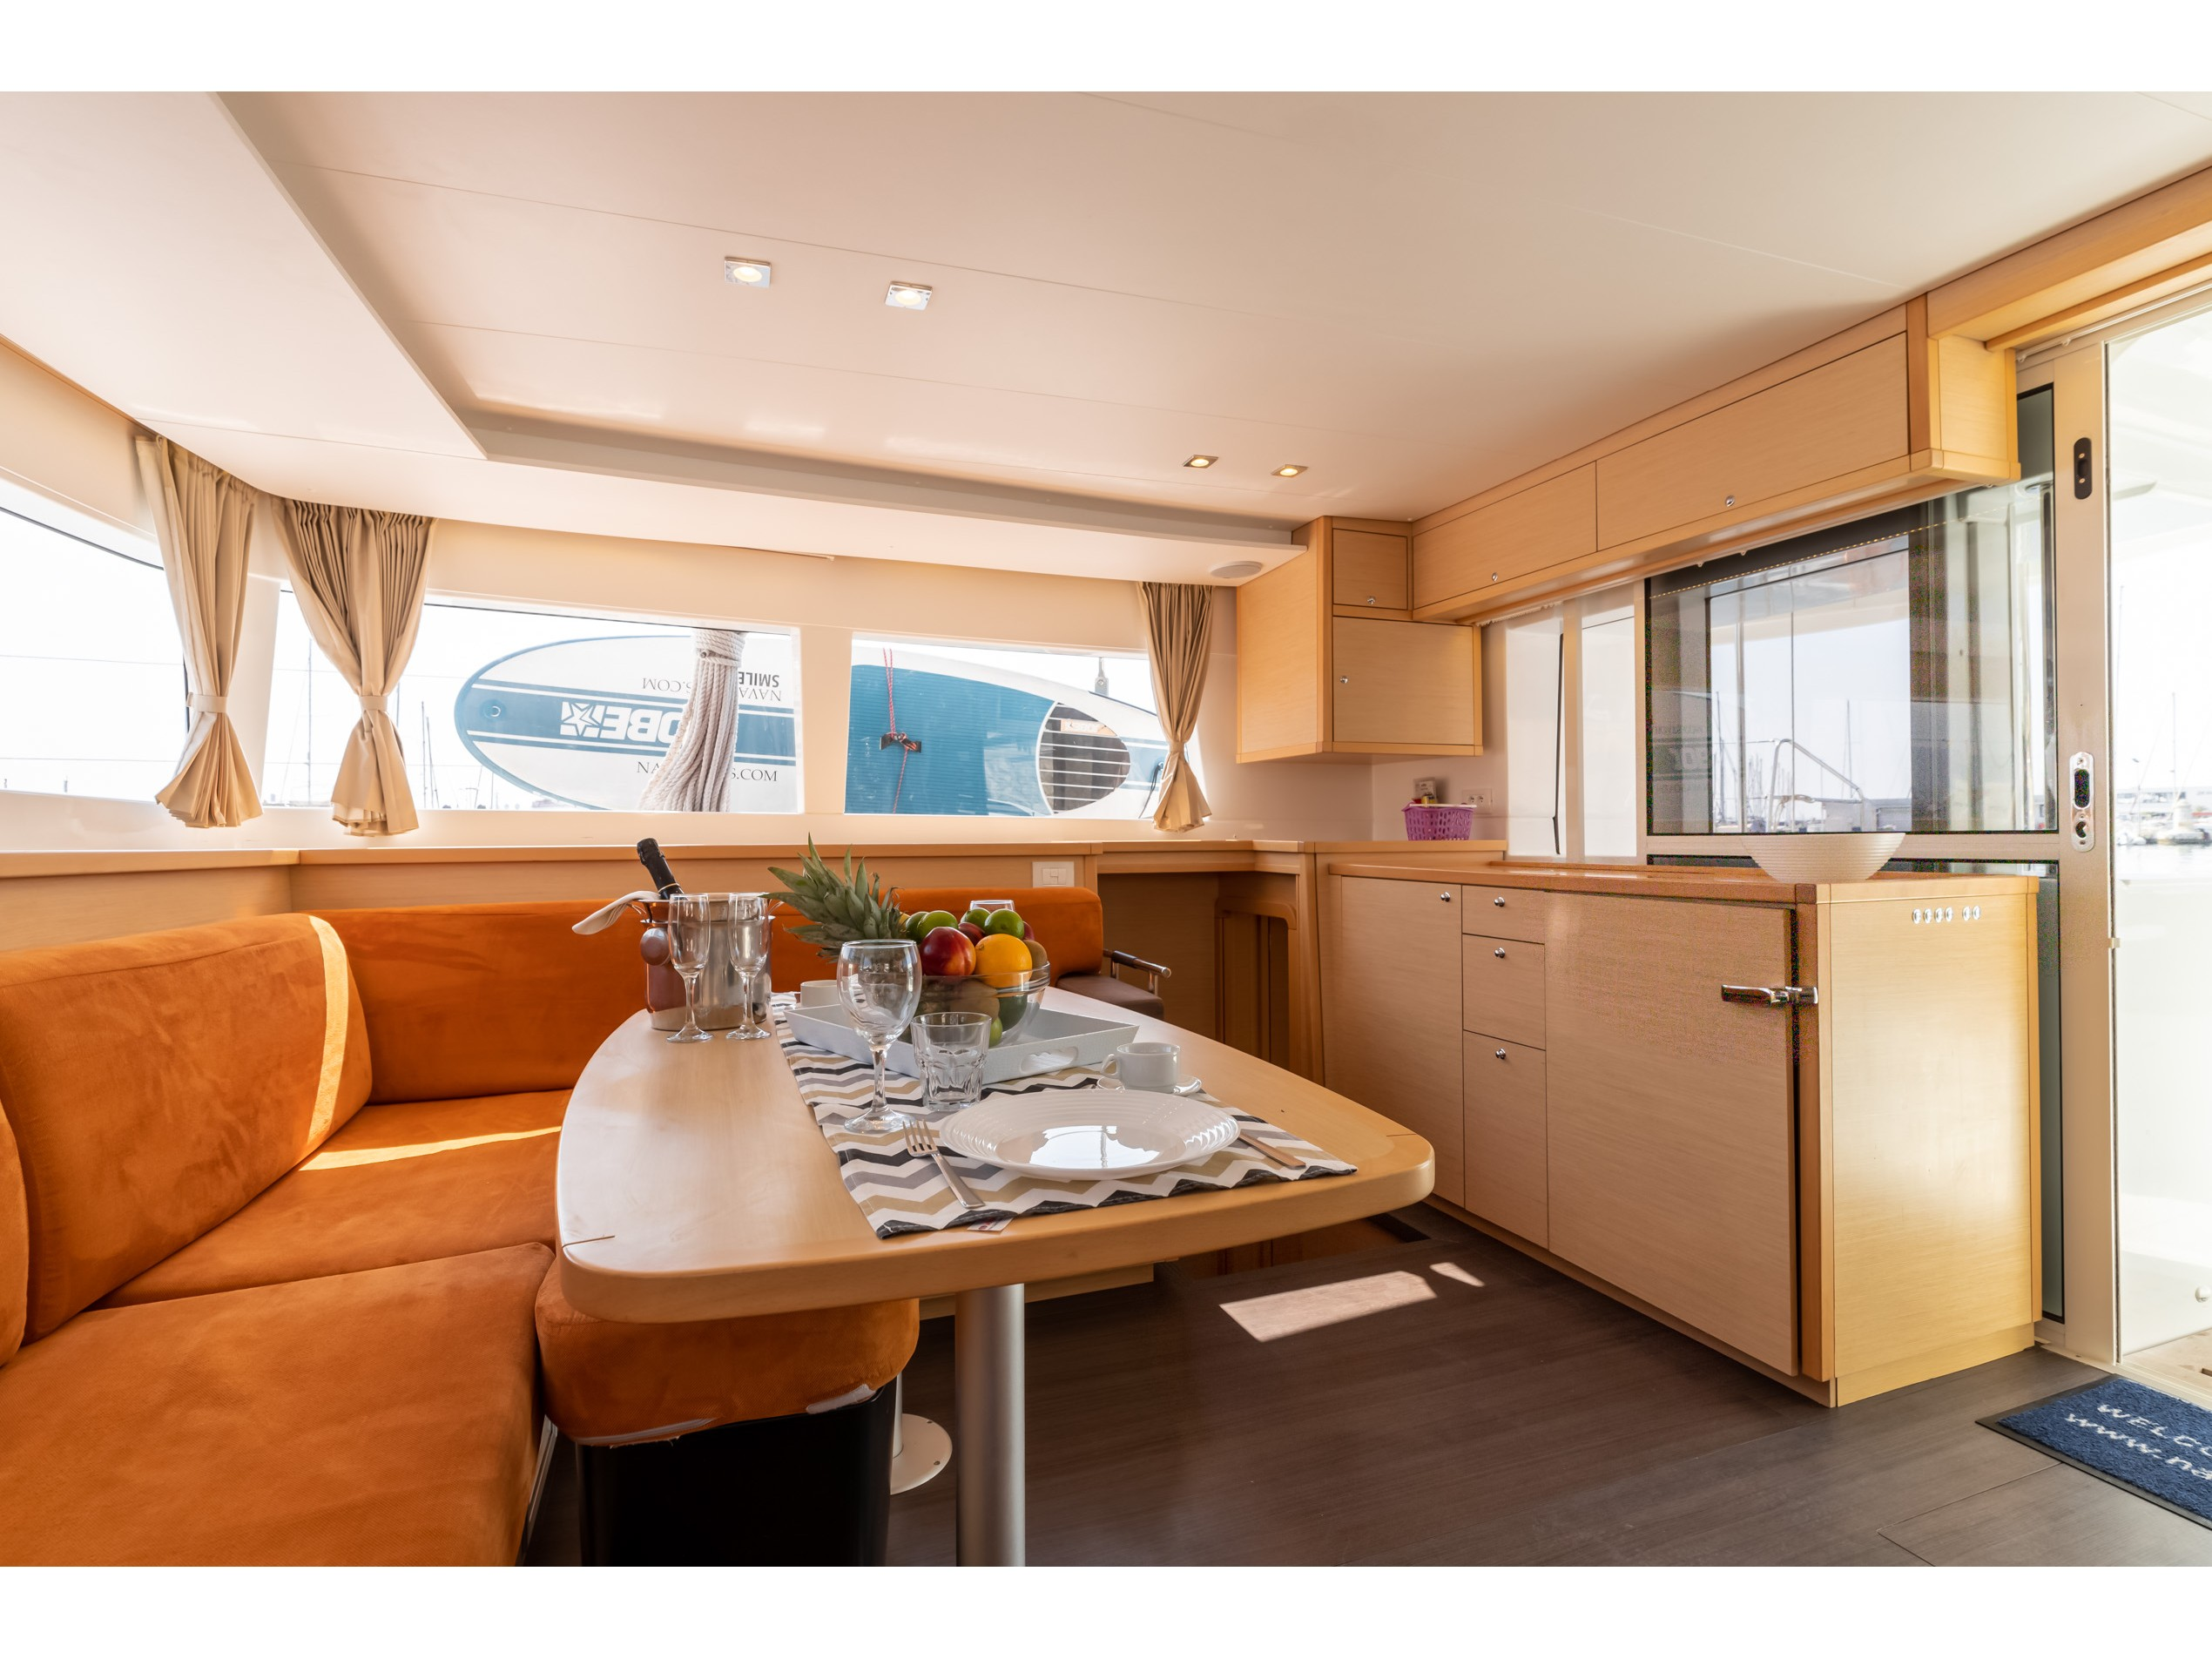 Lagoon 450 (2016) equipped with generator, A/C (sa (SMILE I) Interior image - 8